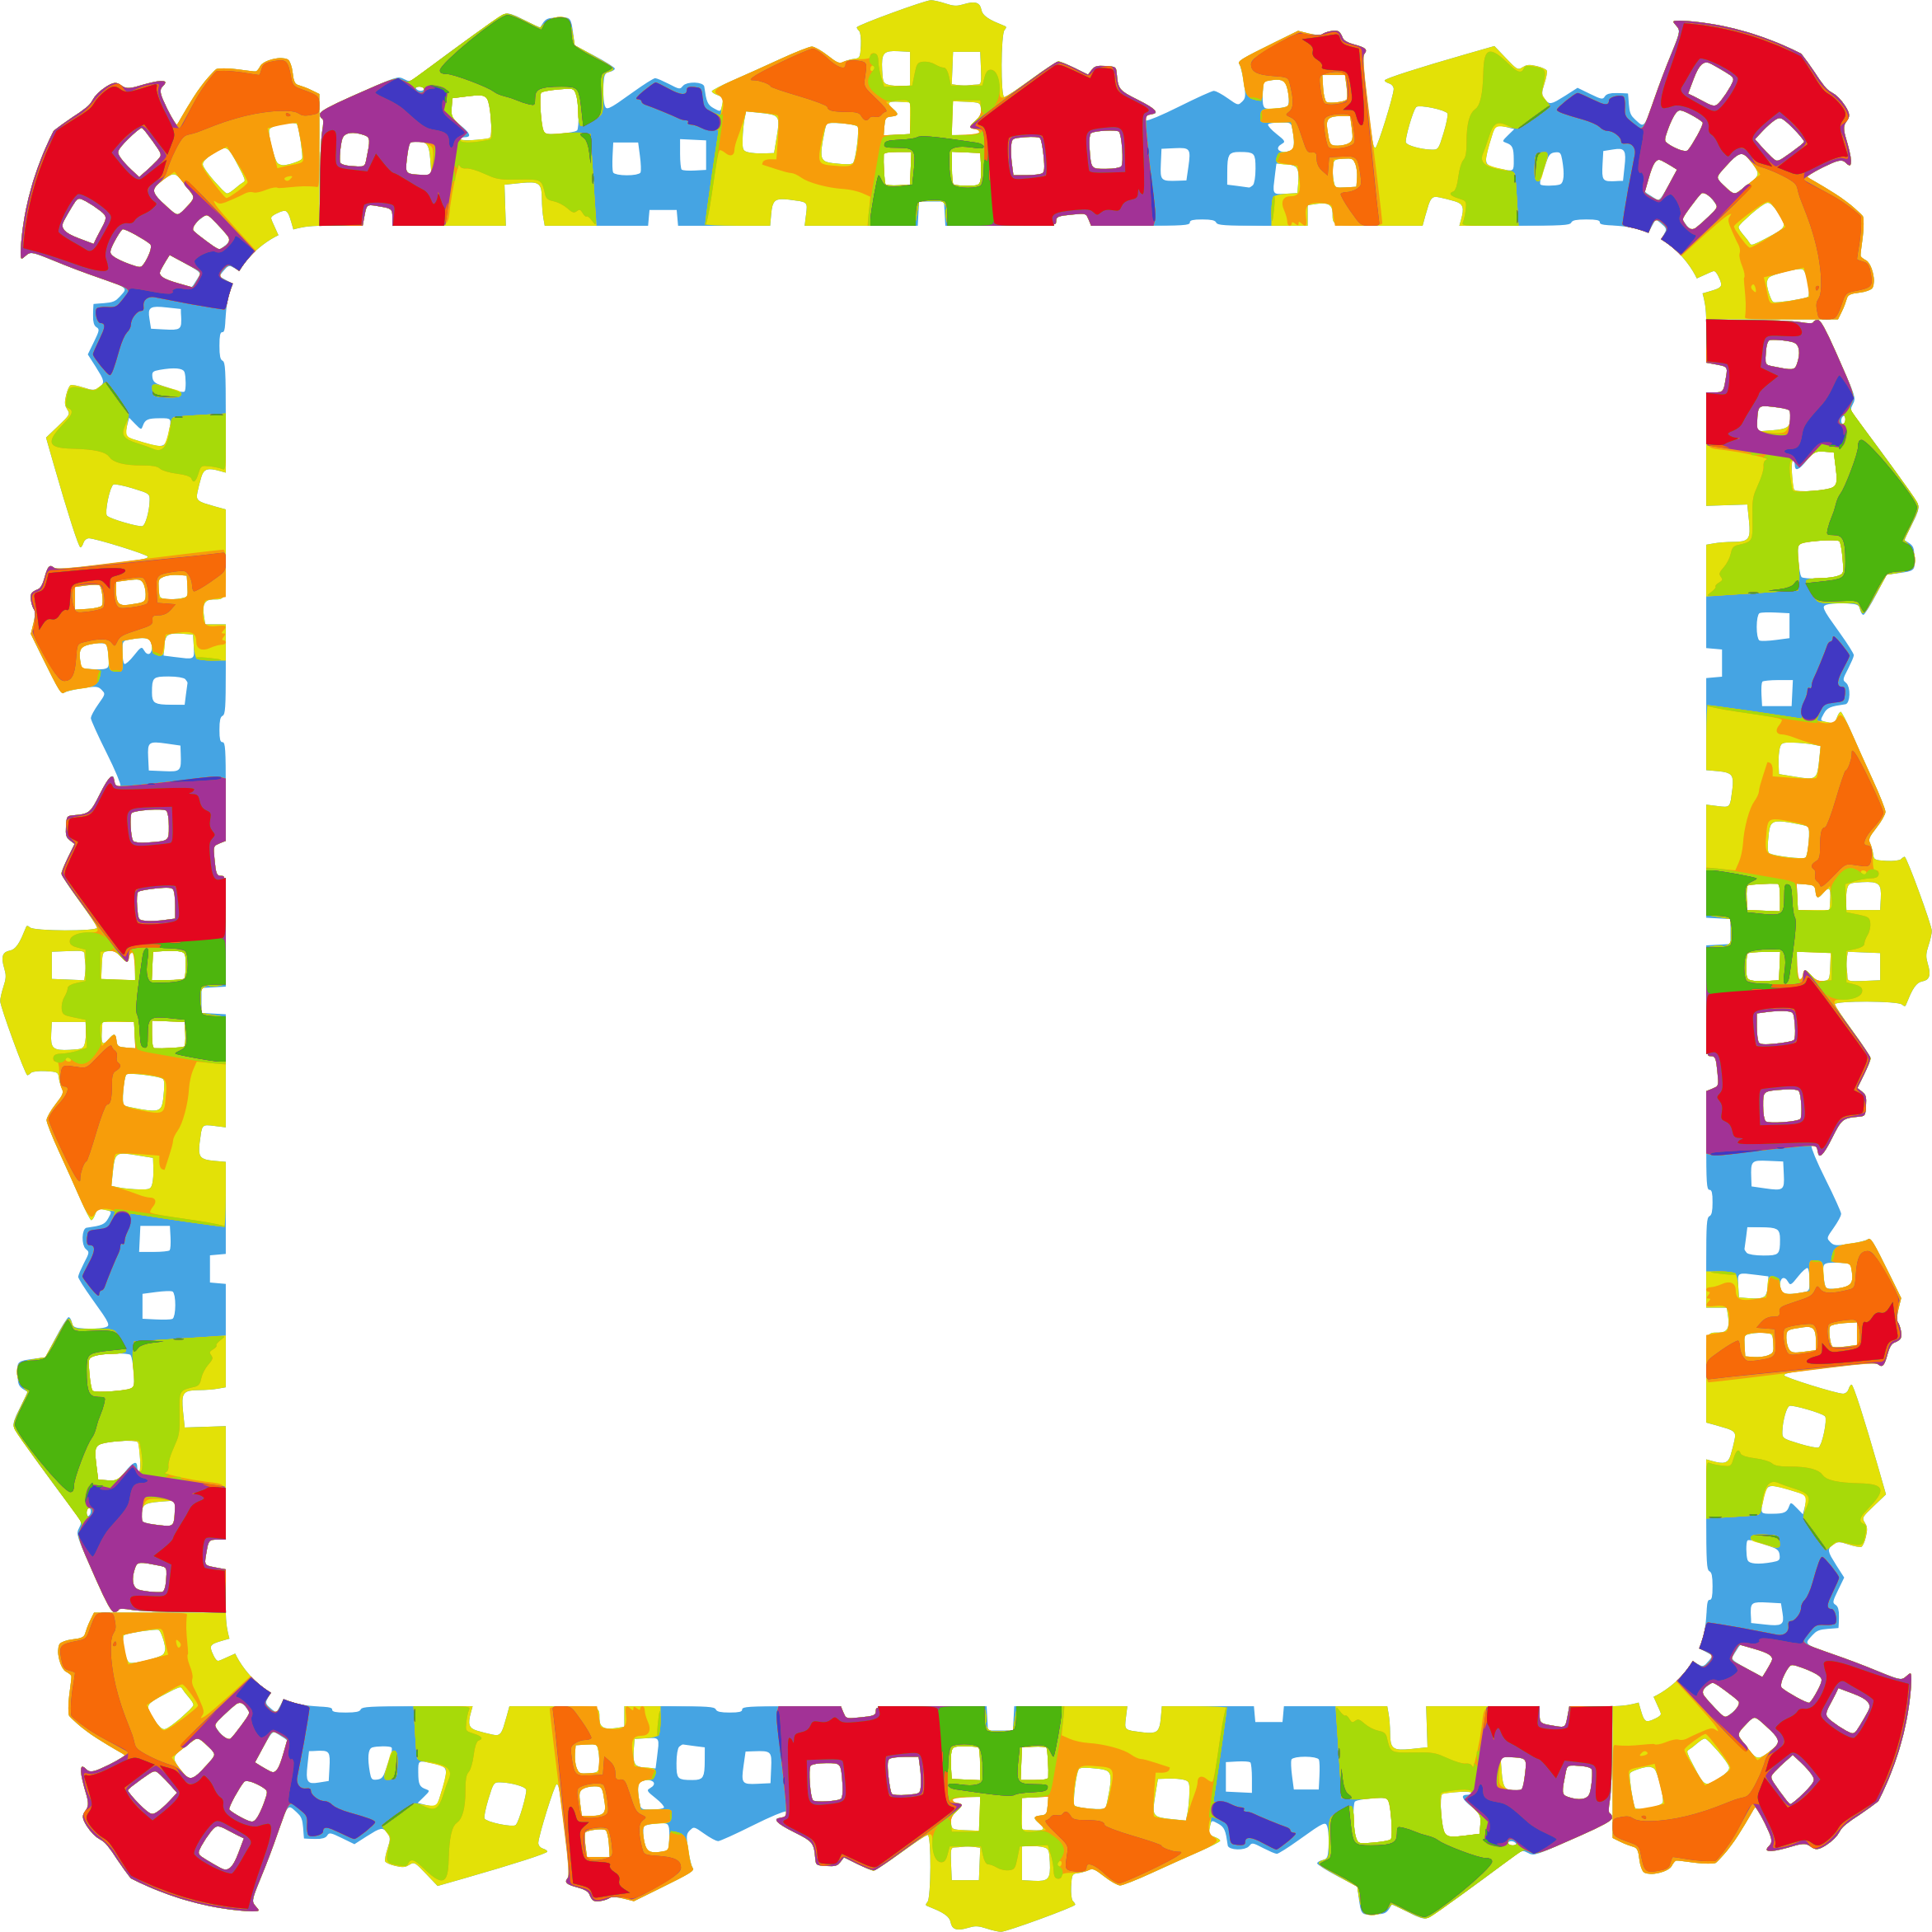 Frame clipart. Colorful houses big image